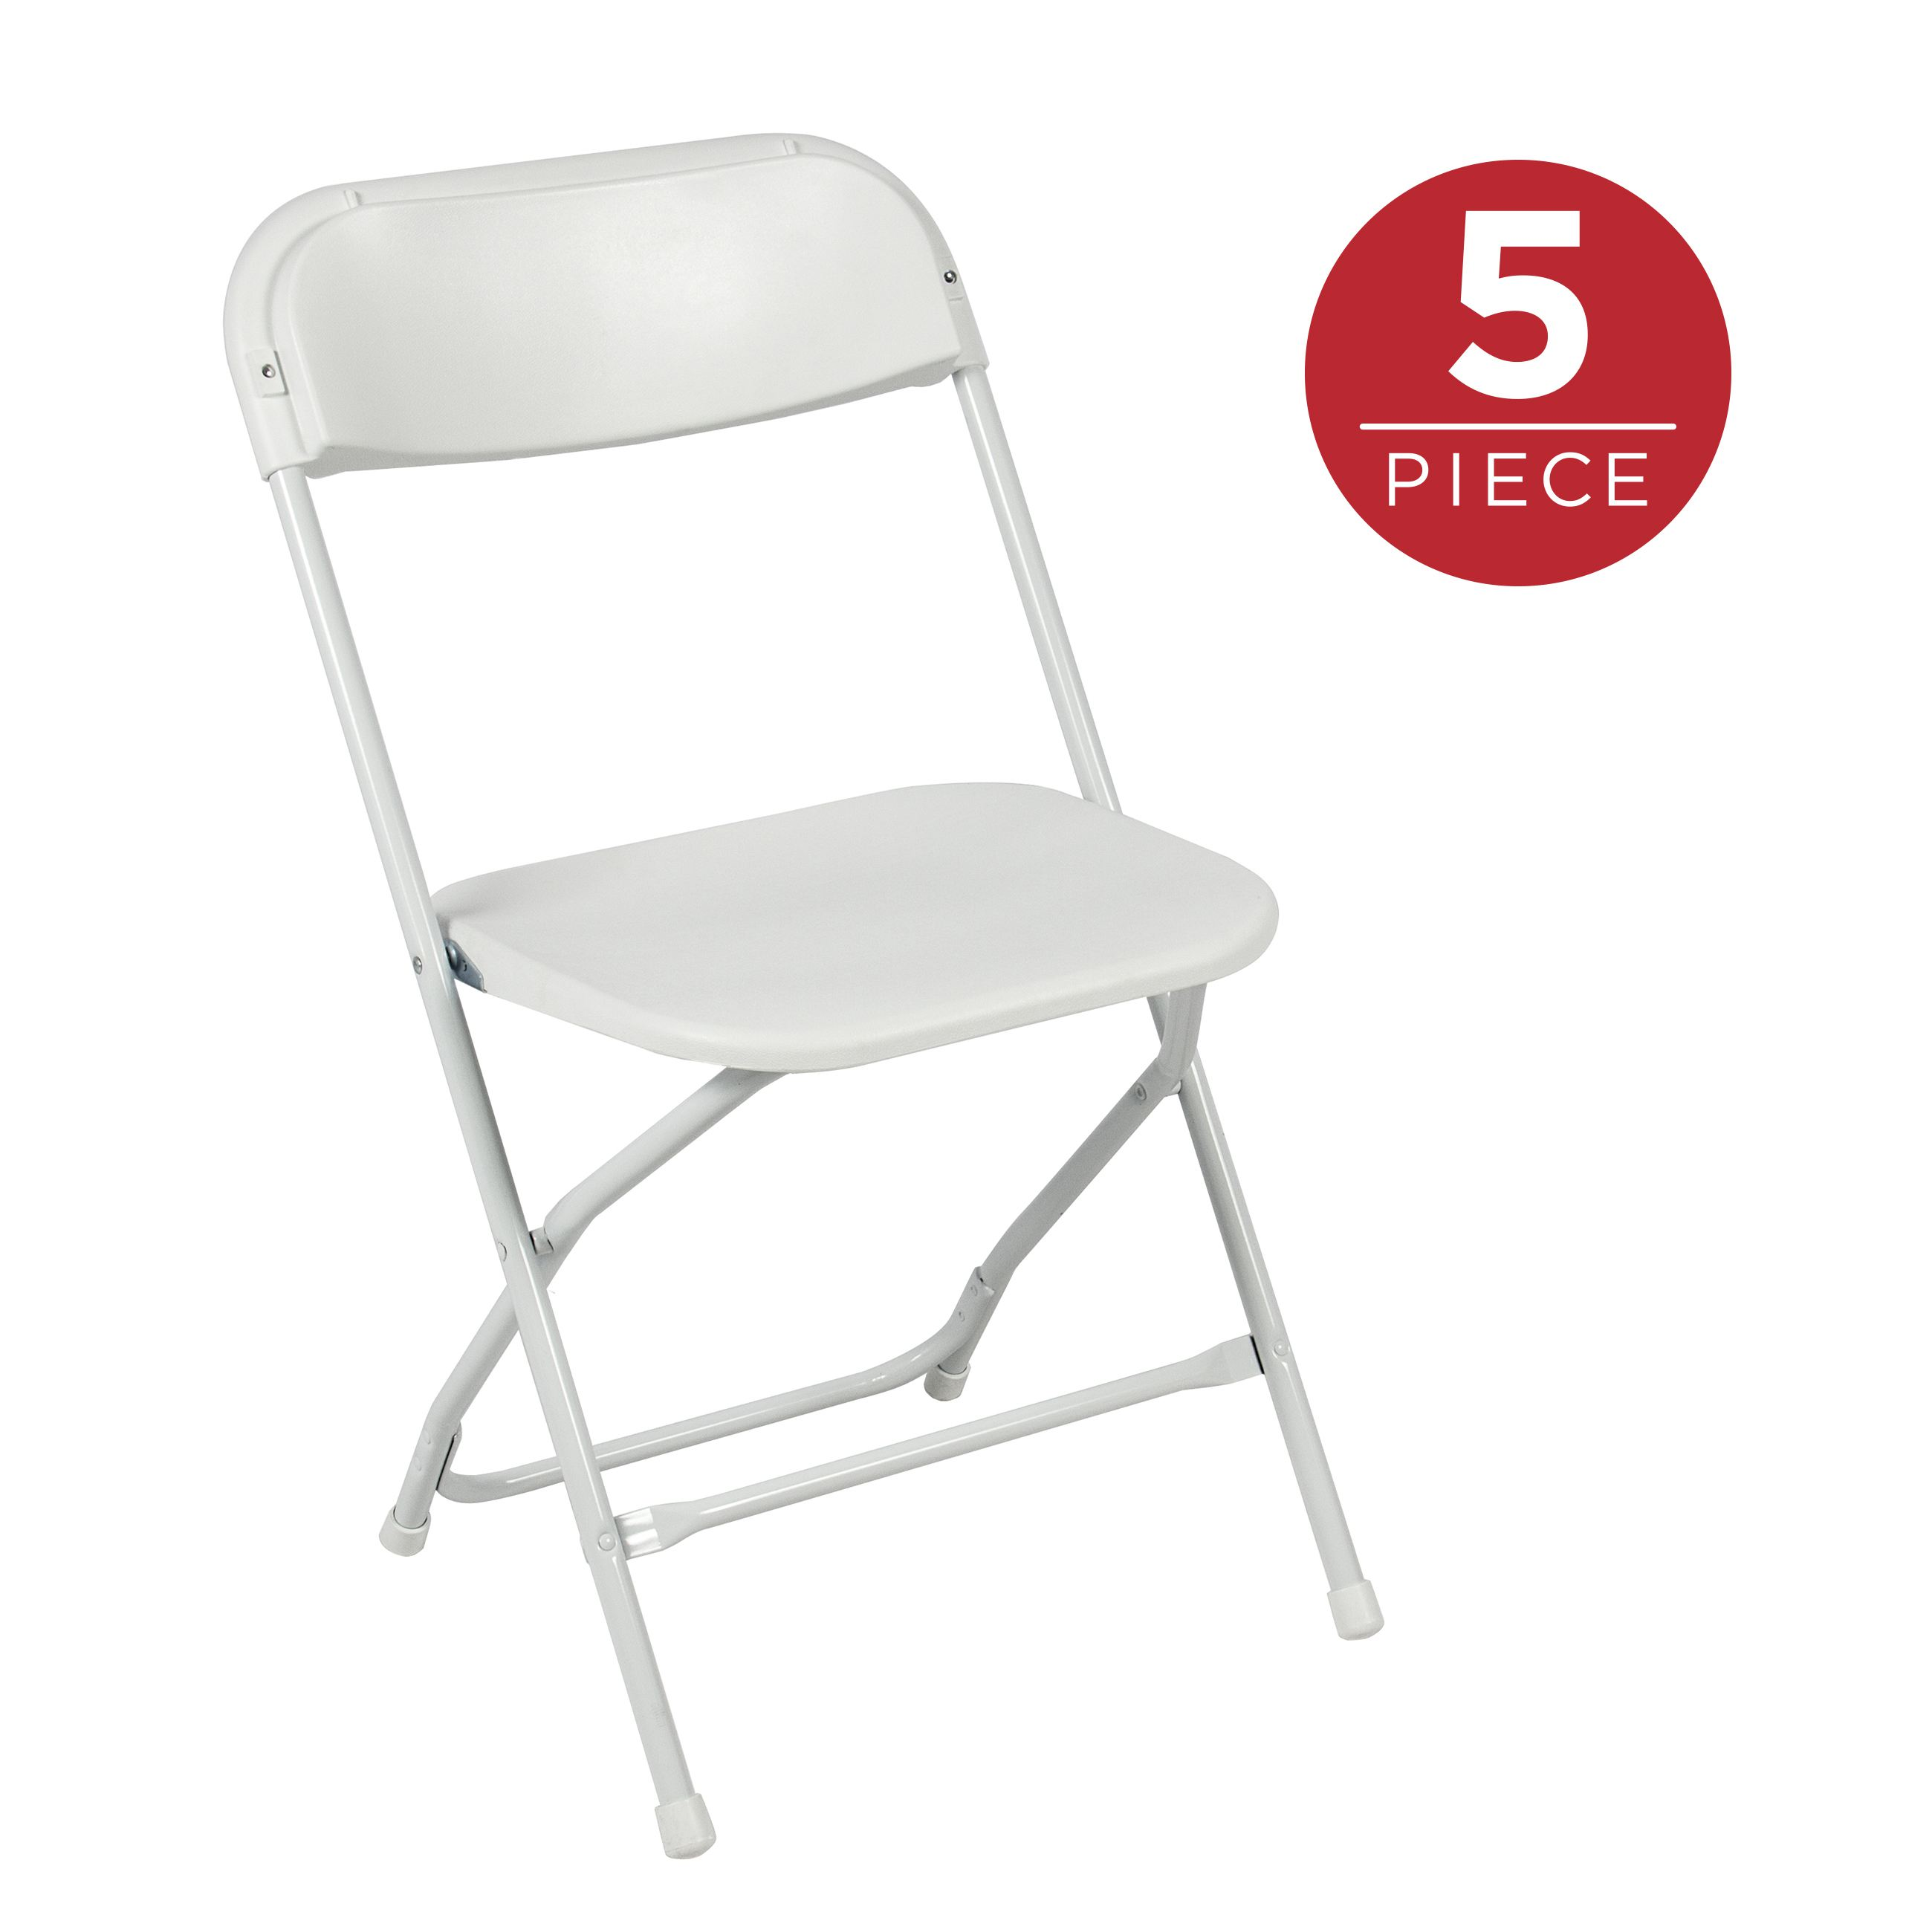 best folding quad chair white rocking nursery chairs for 2019 choice products 5 pack commercial plastic stackable wedding party event